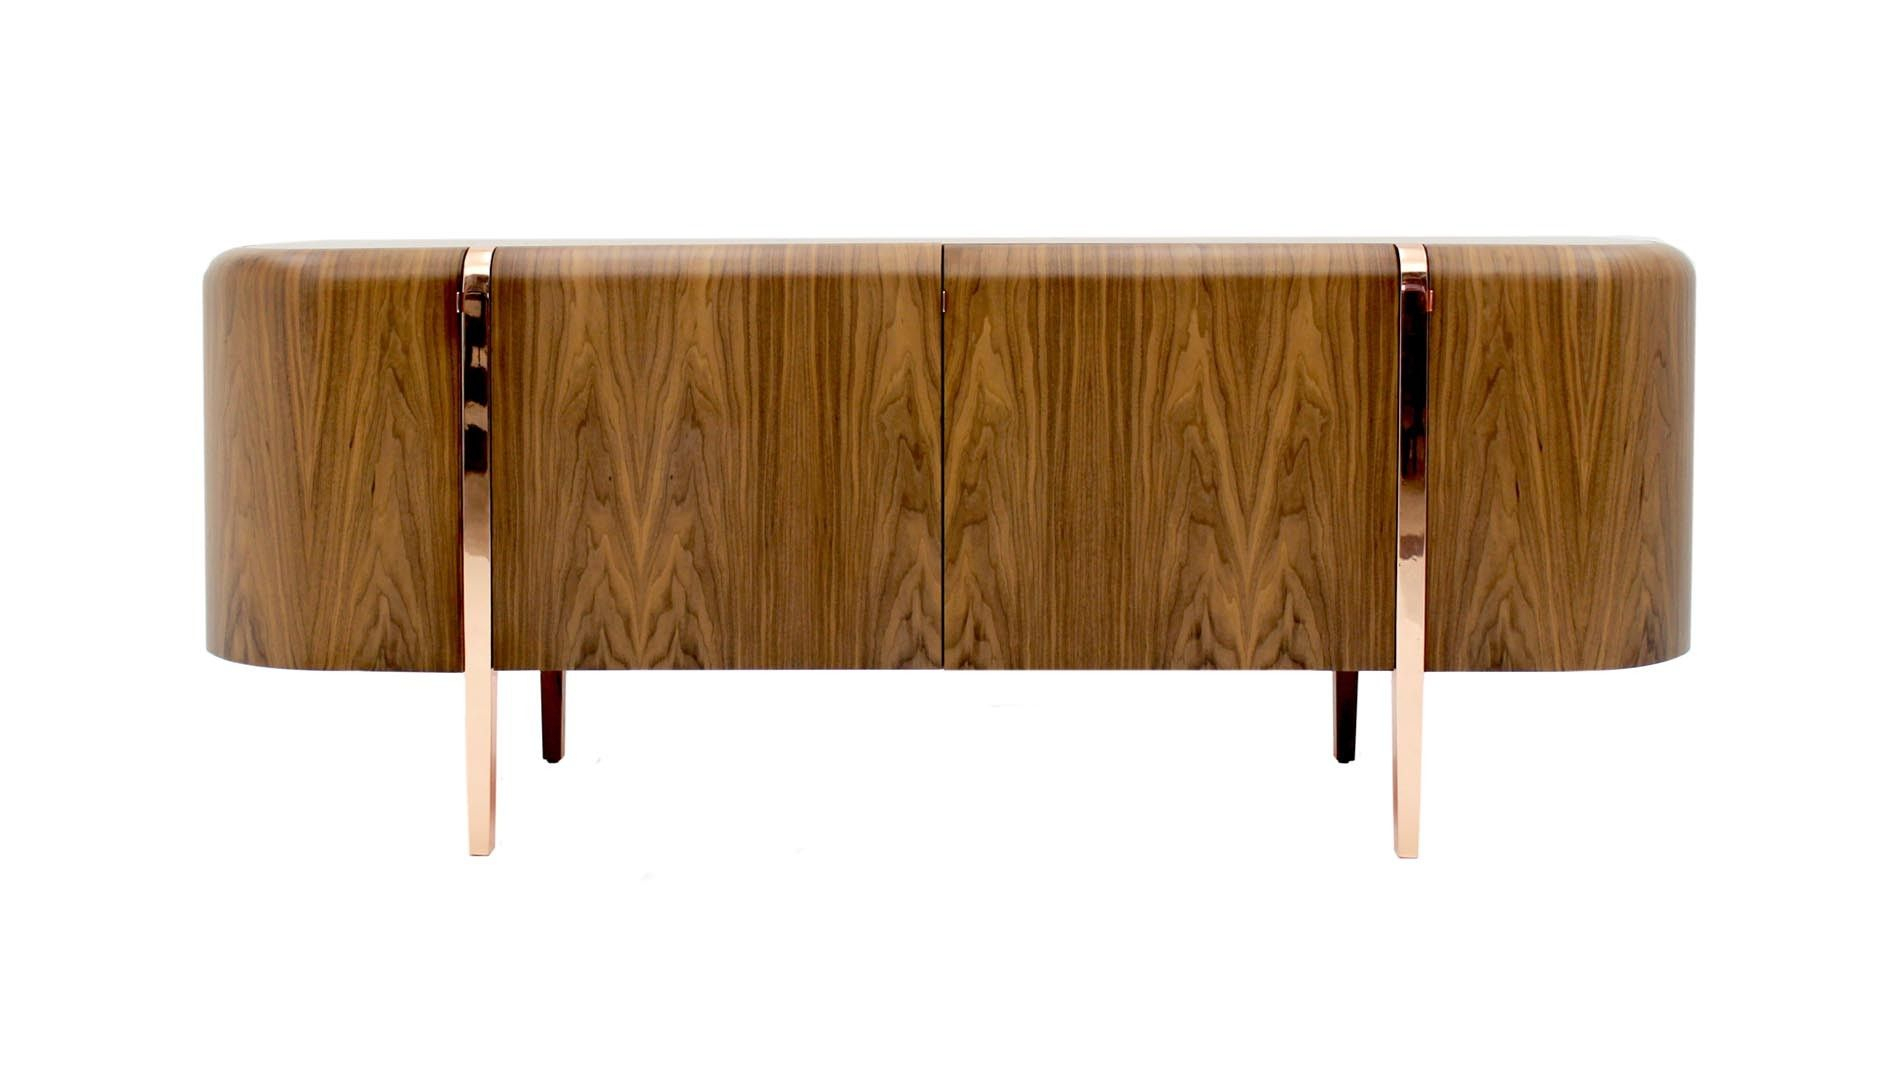 Lola Sideboard | For The Home | Sideboard, Cabinet, Storage With Regard To Most Recent Lola Sideboards (View 3 of 20)